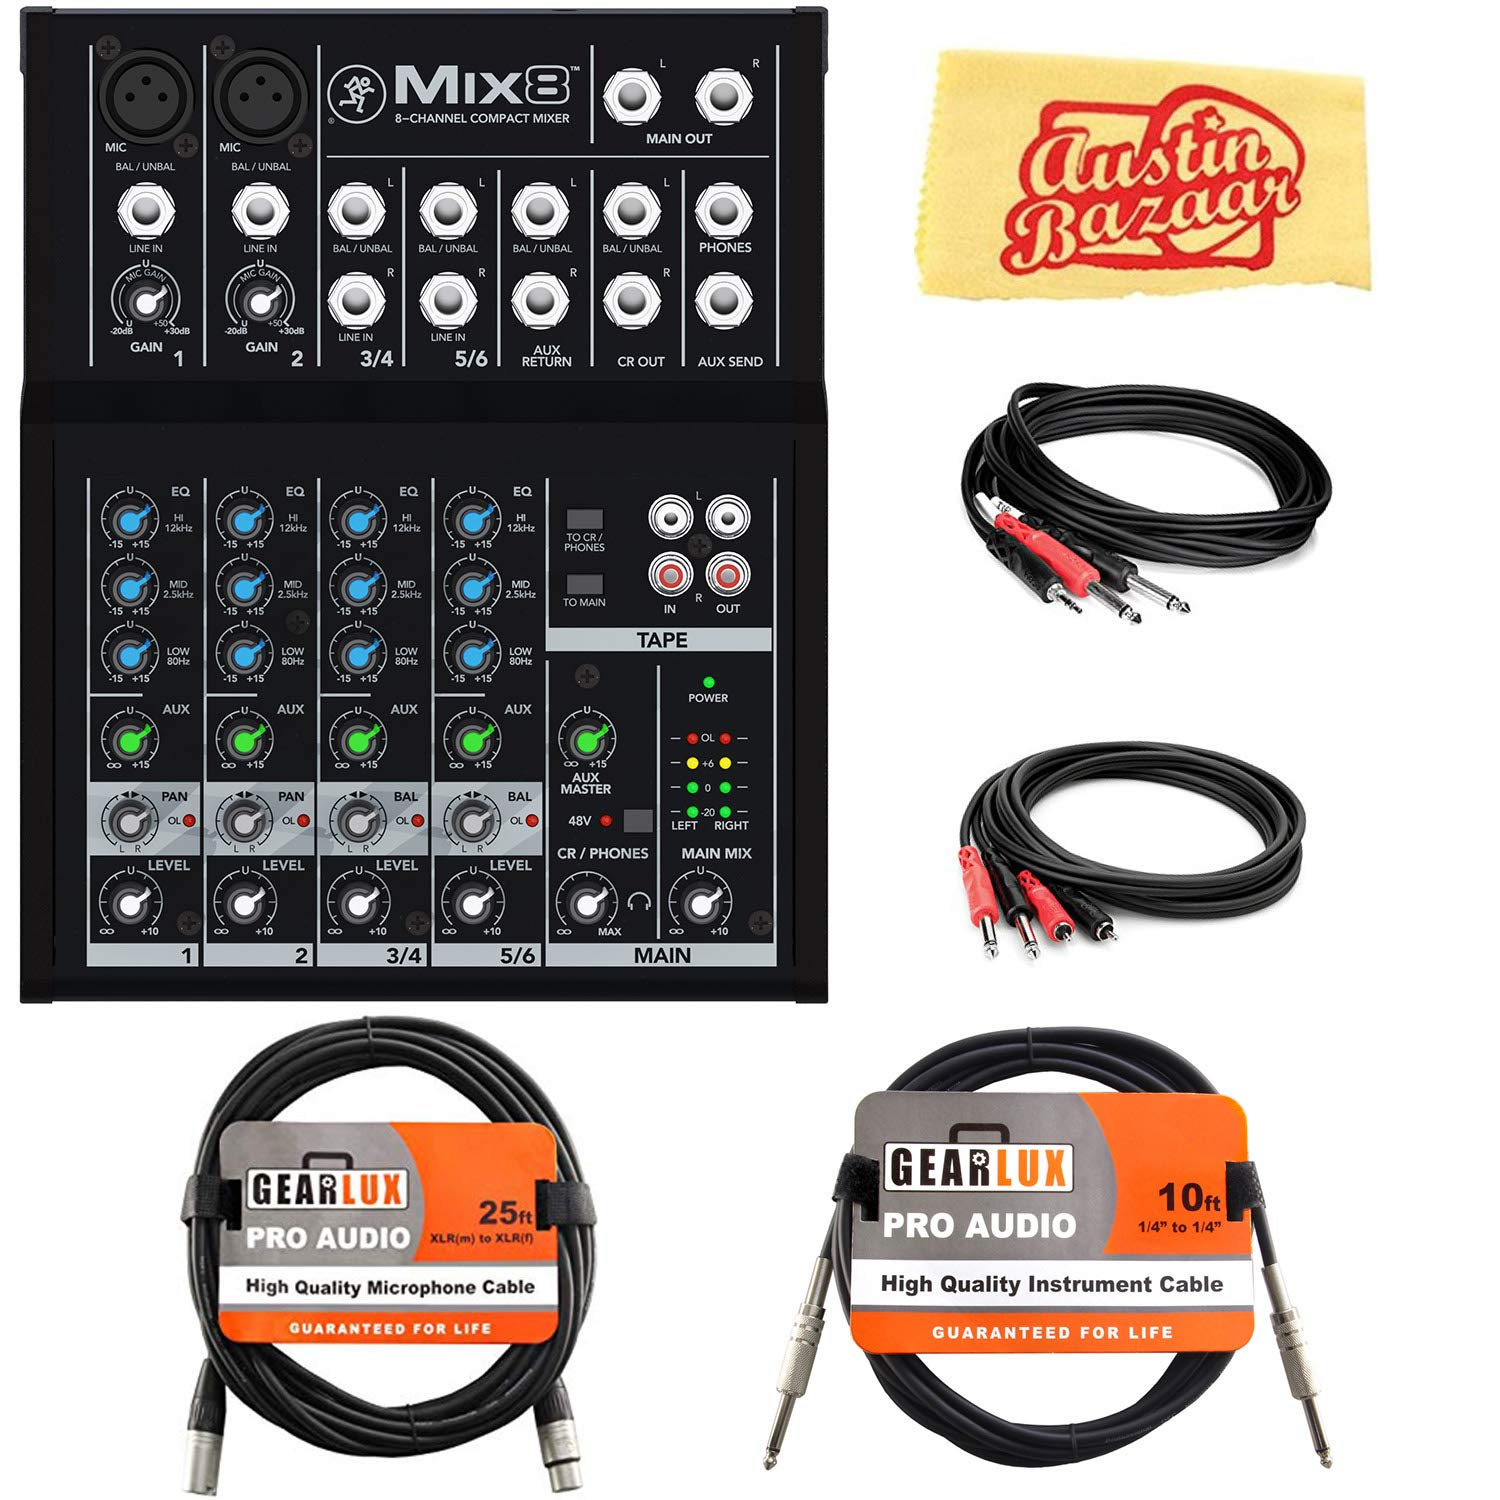 Mackie Mix8 8-Channel Compact Mixer Bundle with XLR Cable, Instrument Cable, Stereo Breakout Cable, Dual 1/4''-to-RCA Cable, and Austin Bazaar Polishing Cloth by Mackie (Image #1)